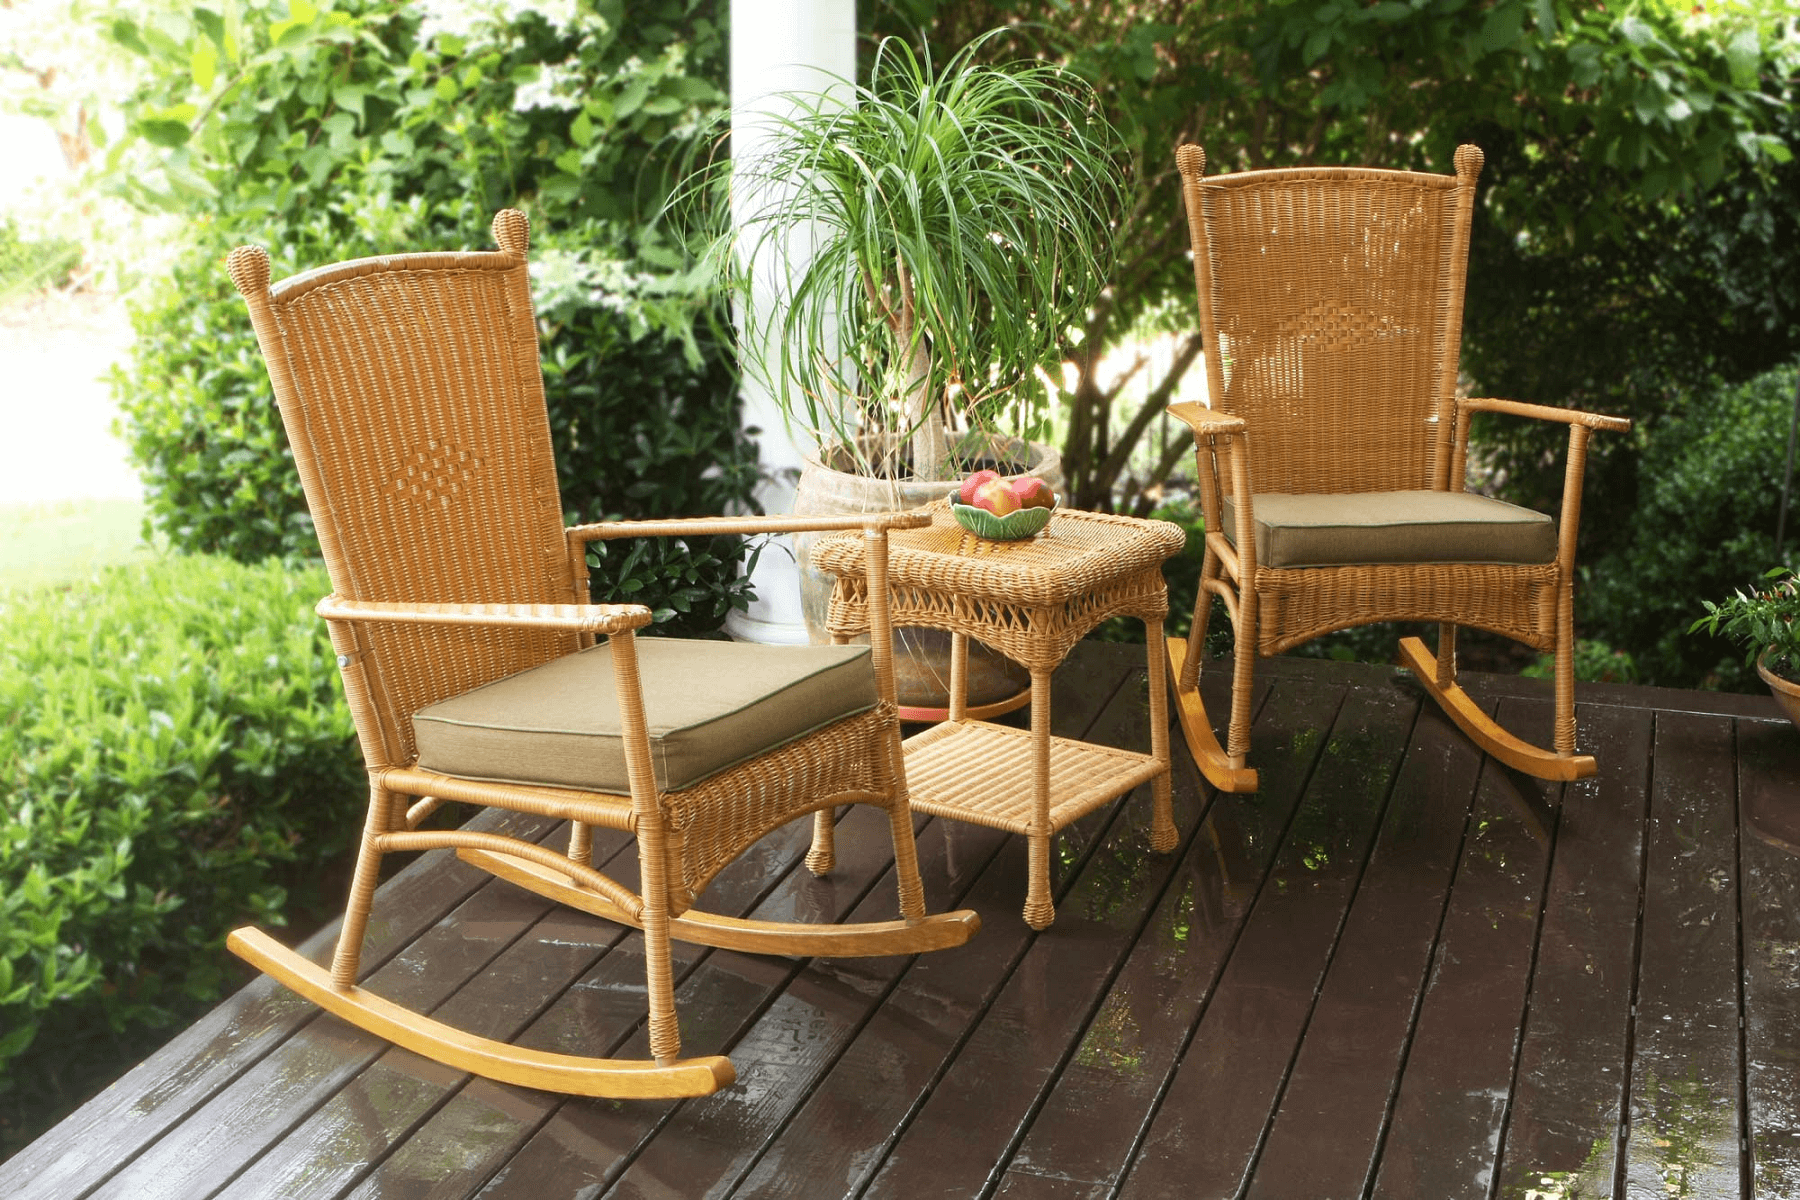 Outdoor front porch with rocking chairs Rocking chair